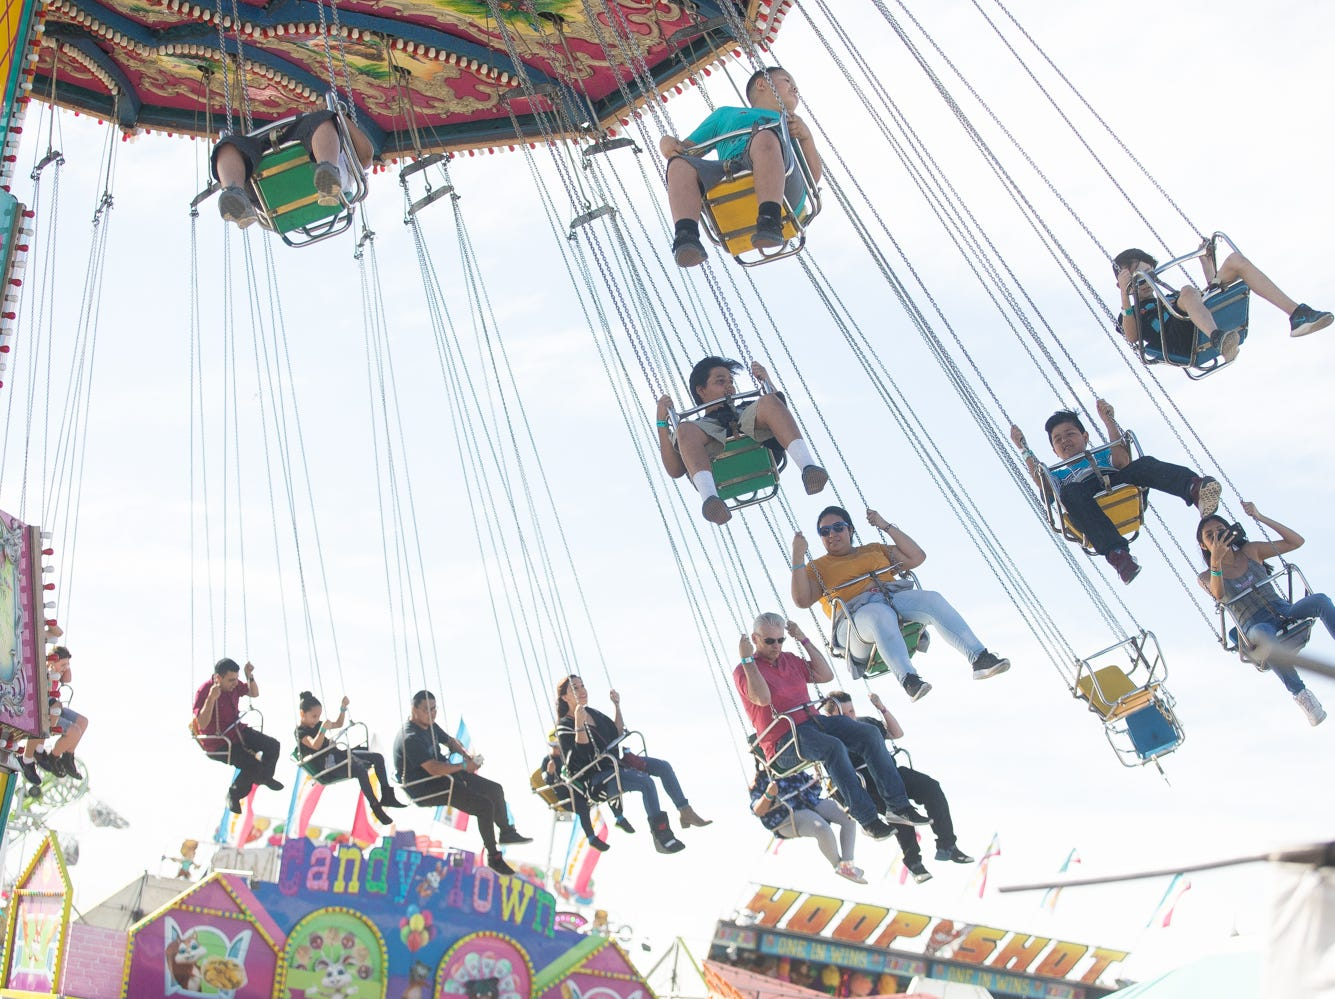 The rides were popular with kids and adults alike at the Chandler Ostrich Festival on Sunday, March. 10, 2019.